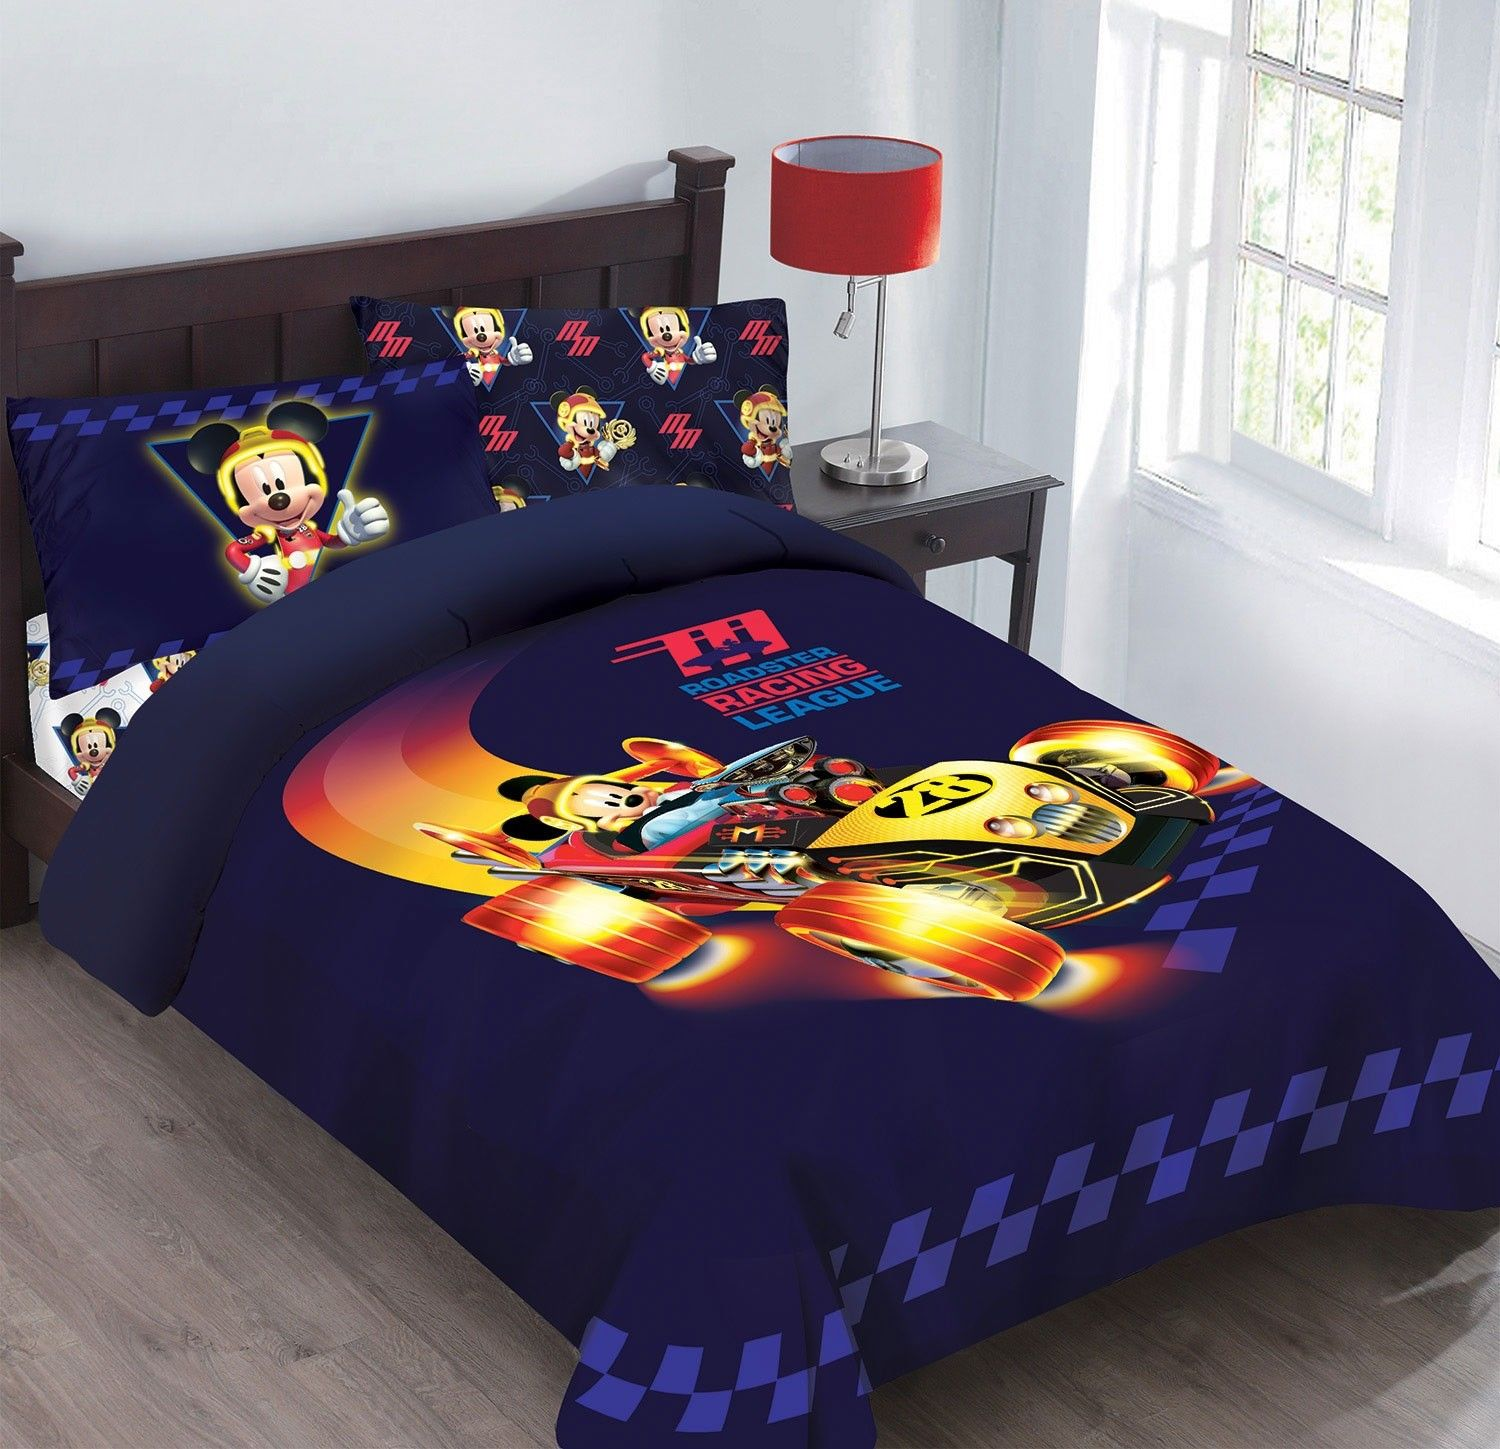 Disney 3pc MICKEY MOUSE Super Charged Racer Bedding Set, Licensed Twin Comforter W/Fitted Sheet And Pillowcase